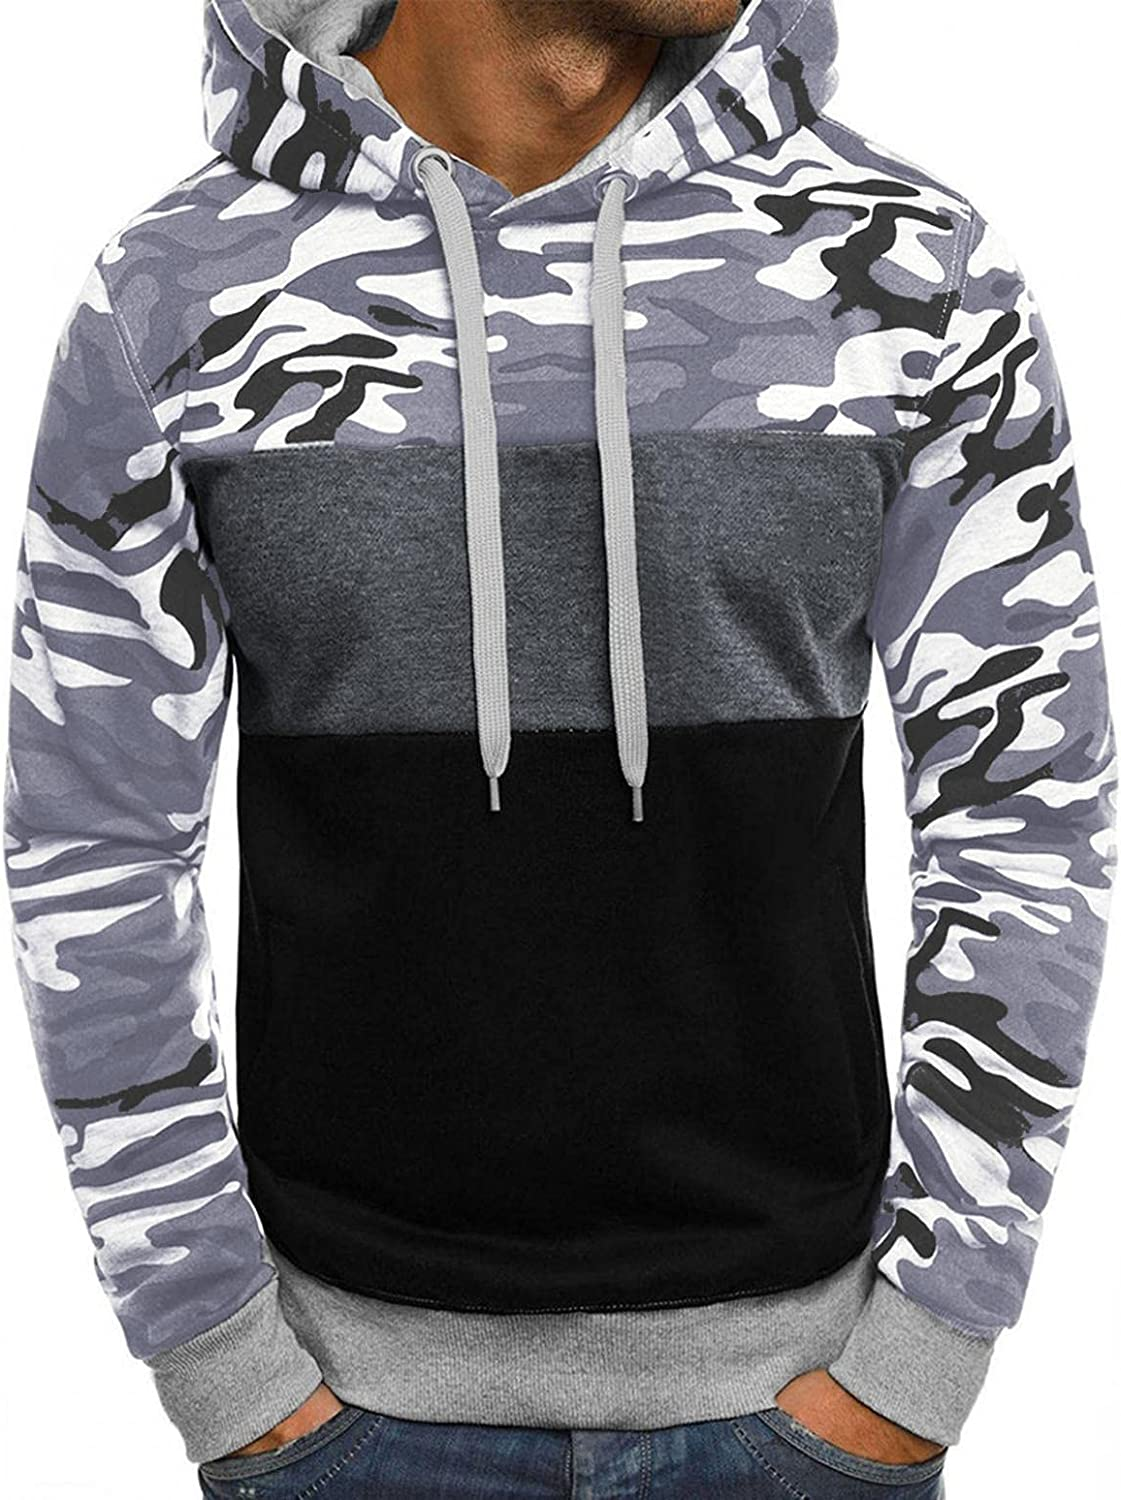 Huangse Hoodies for Men Cozy Camouflage Pullover Casual Loose Long Sleeve Sweatshirt Workout Sports Sweater Hoodies